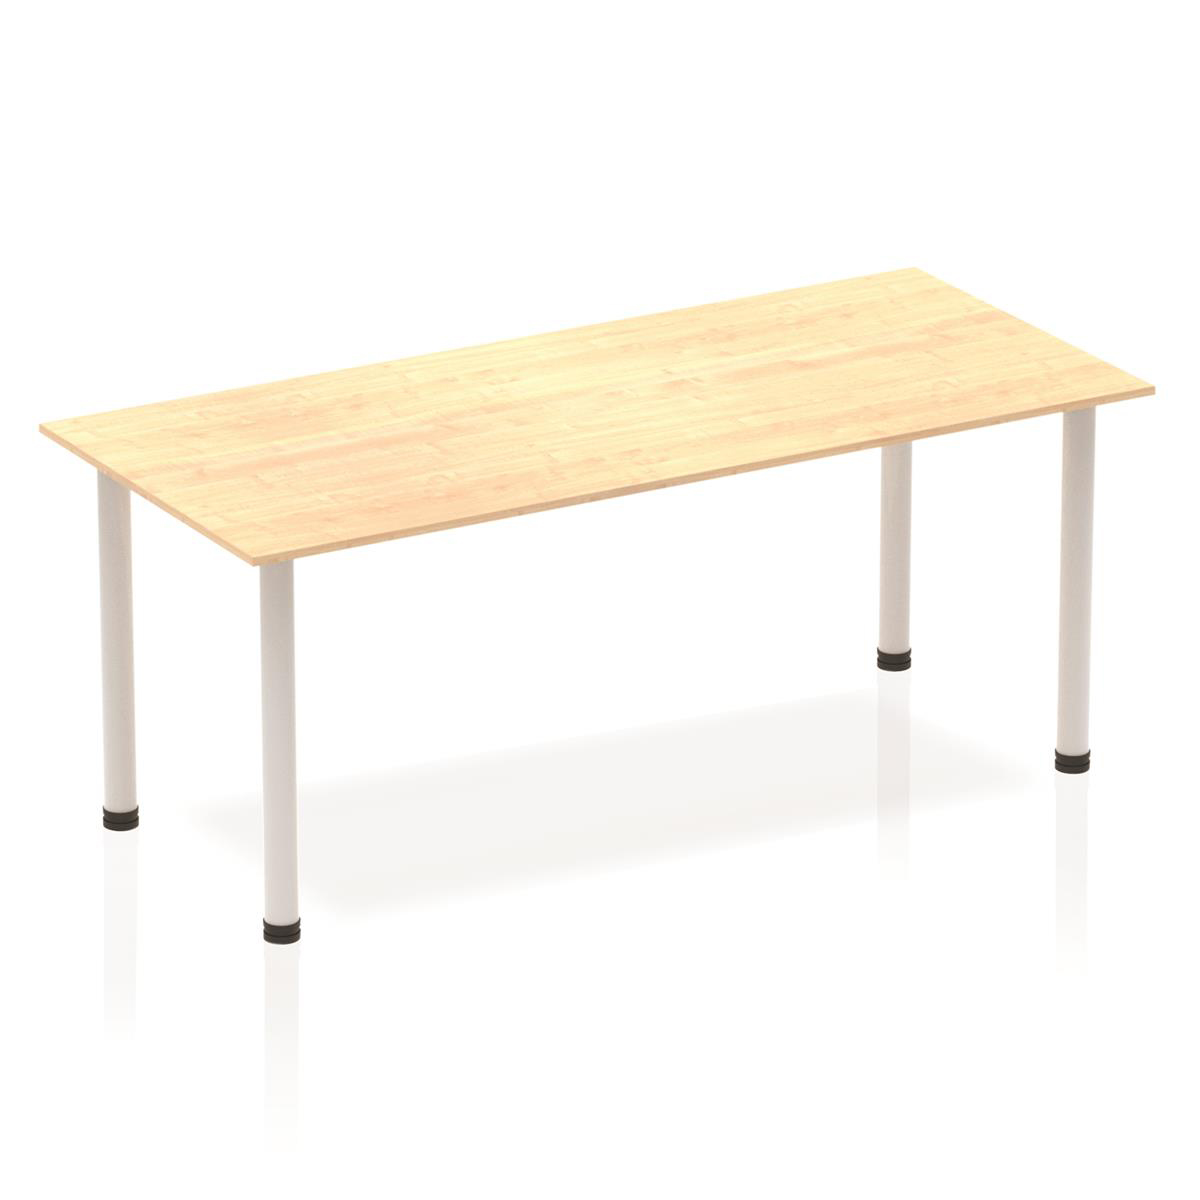 Sonix Rectangular Silver Post Leg Table 1800x800mm Maple Ref BF00193